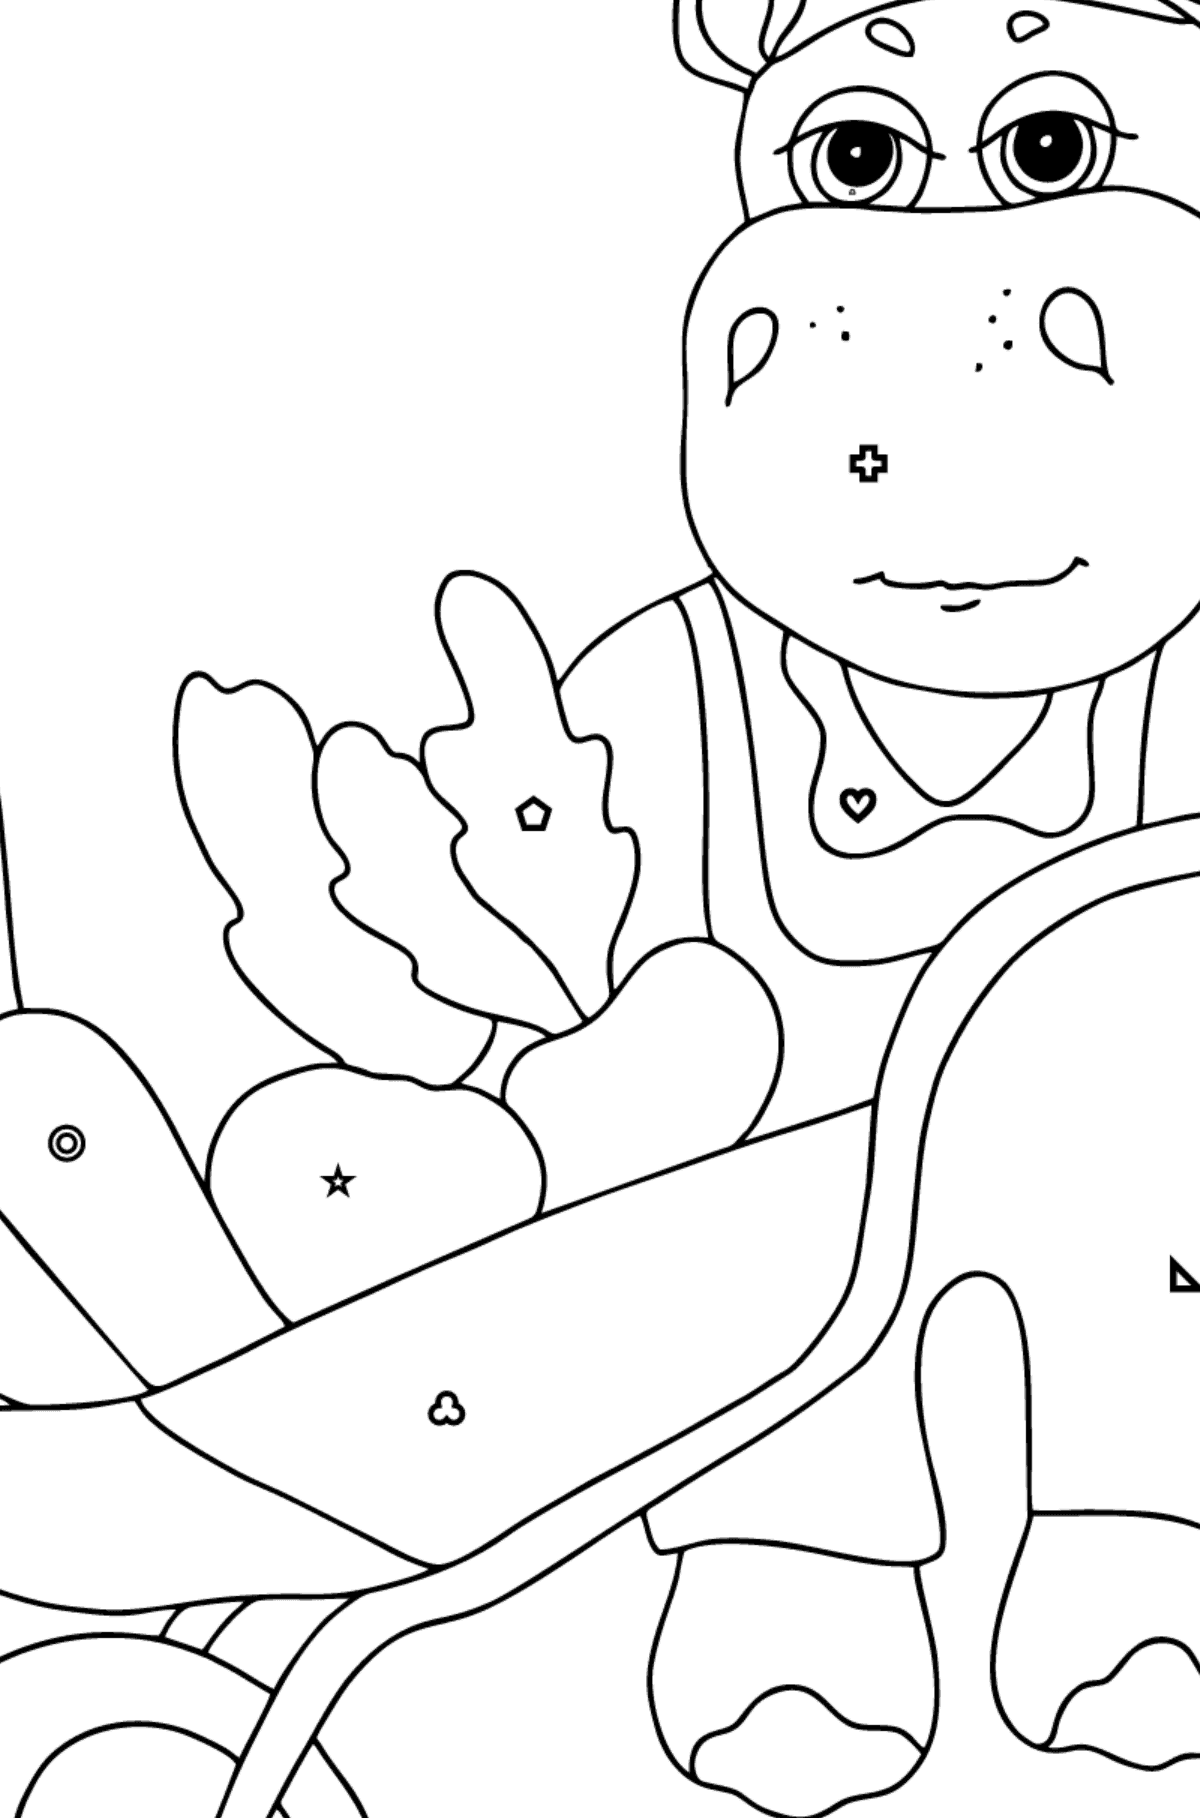 Coloring Page - A Hippo with a Cart for Kids  - Color by Geometric Shapes